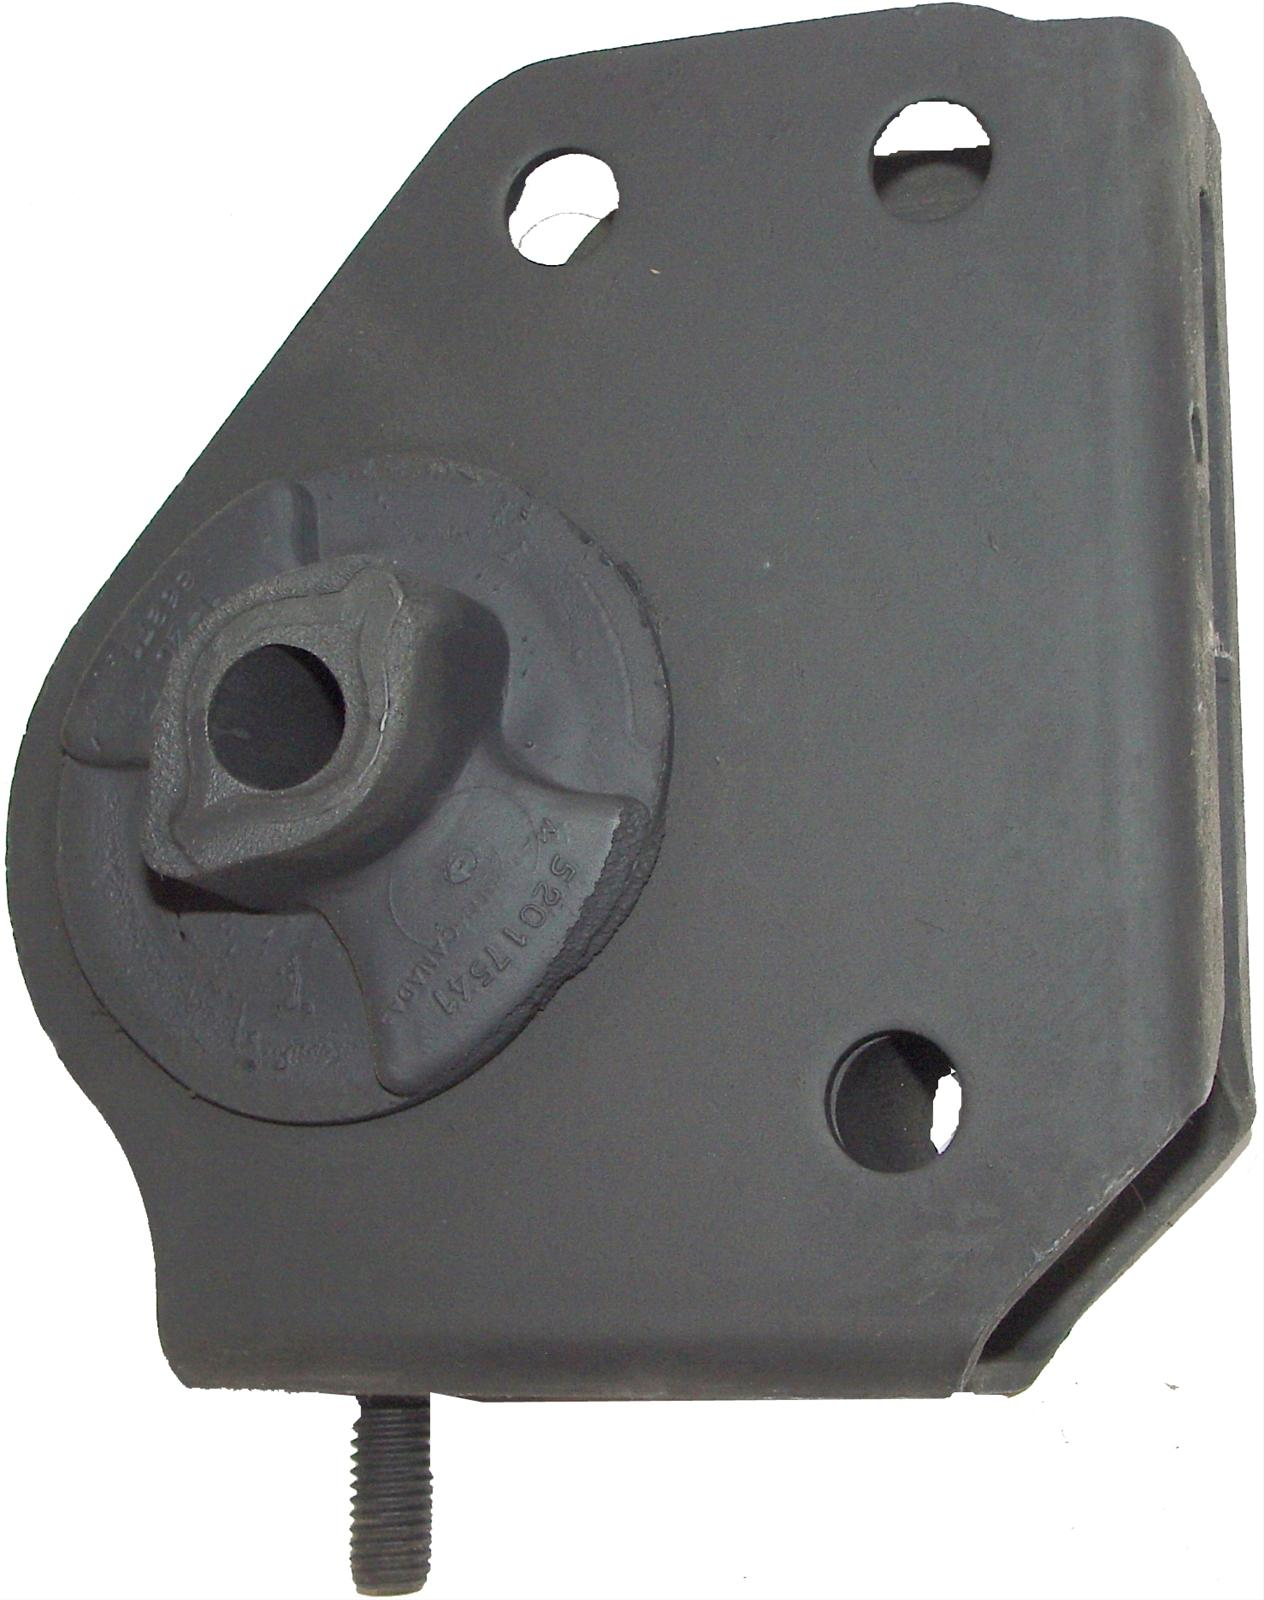 Anchor industries engine mounts 2961 free shipping on for Anchor industries motor mounts